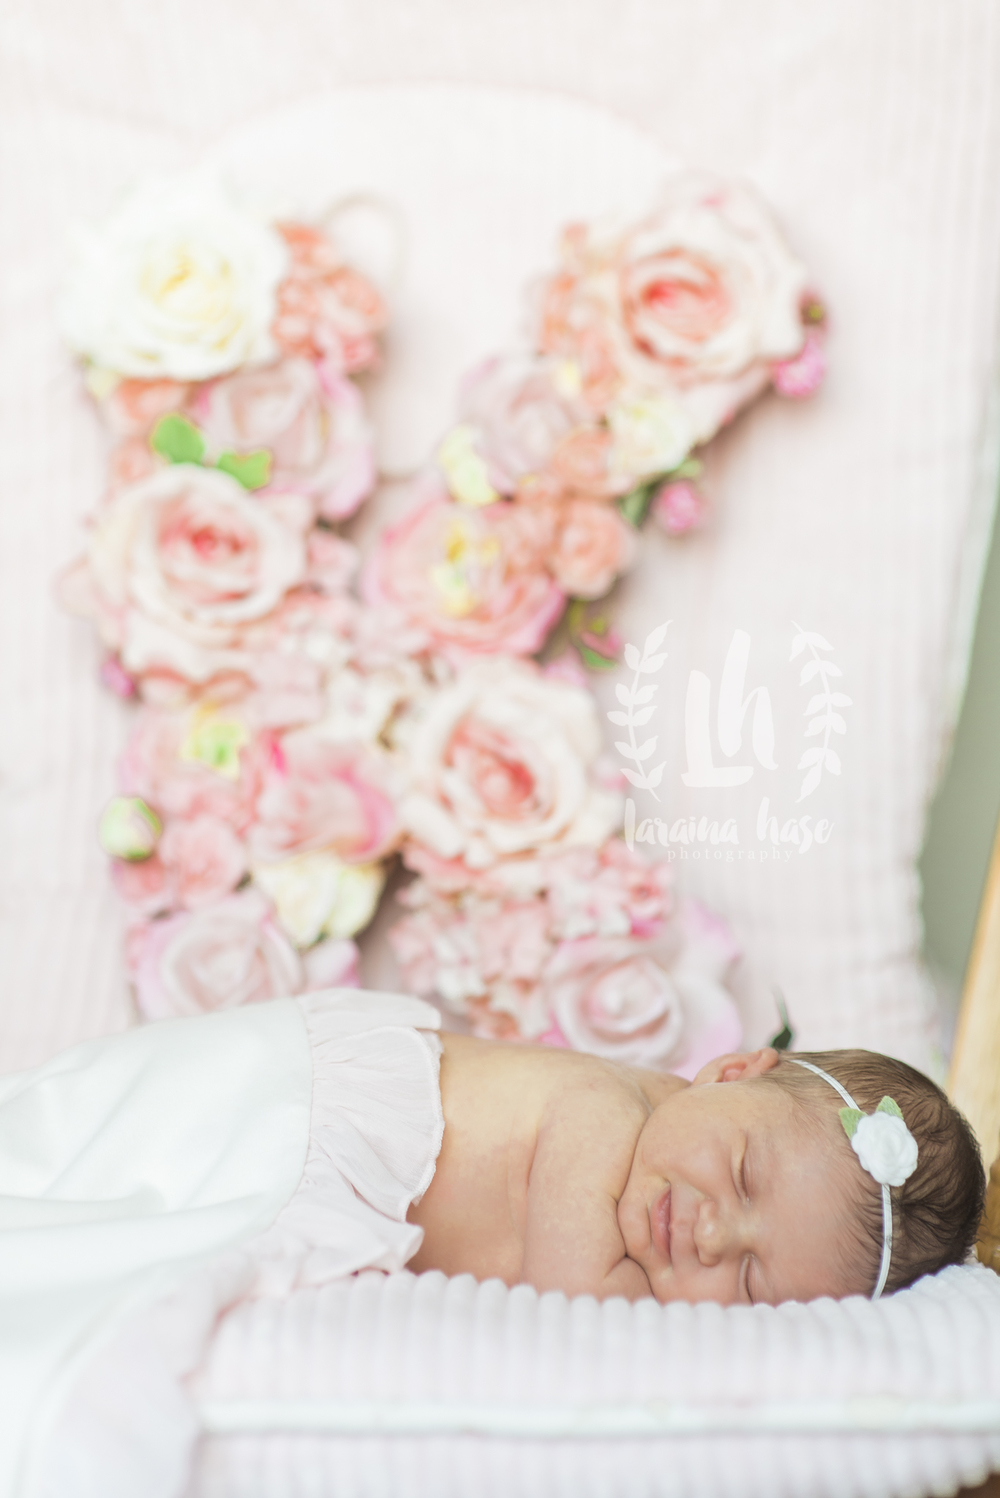 Lifestyle Newborn Photography South Texas Floral Letter Nursery Decor